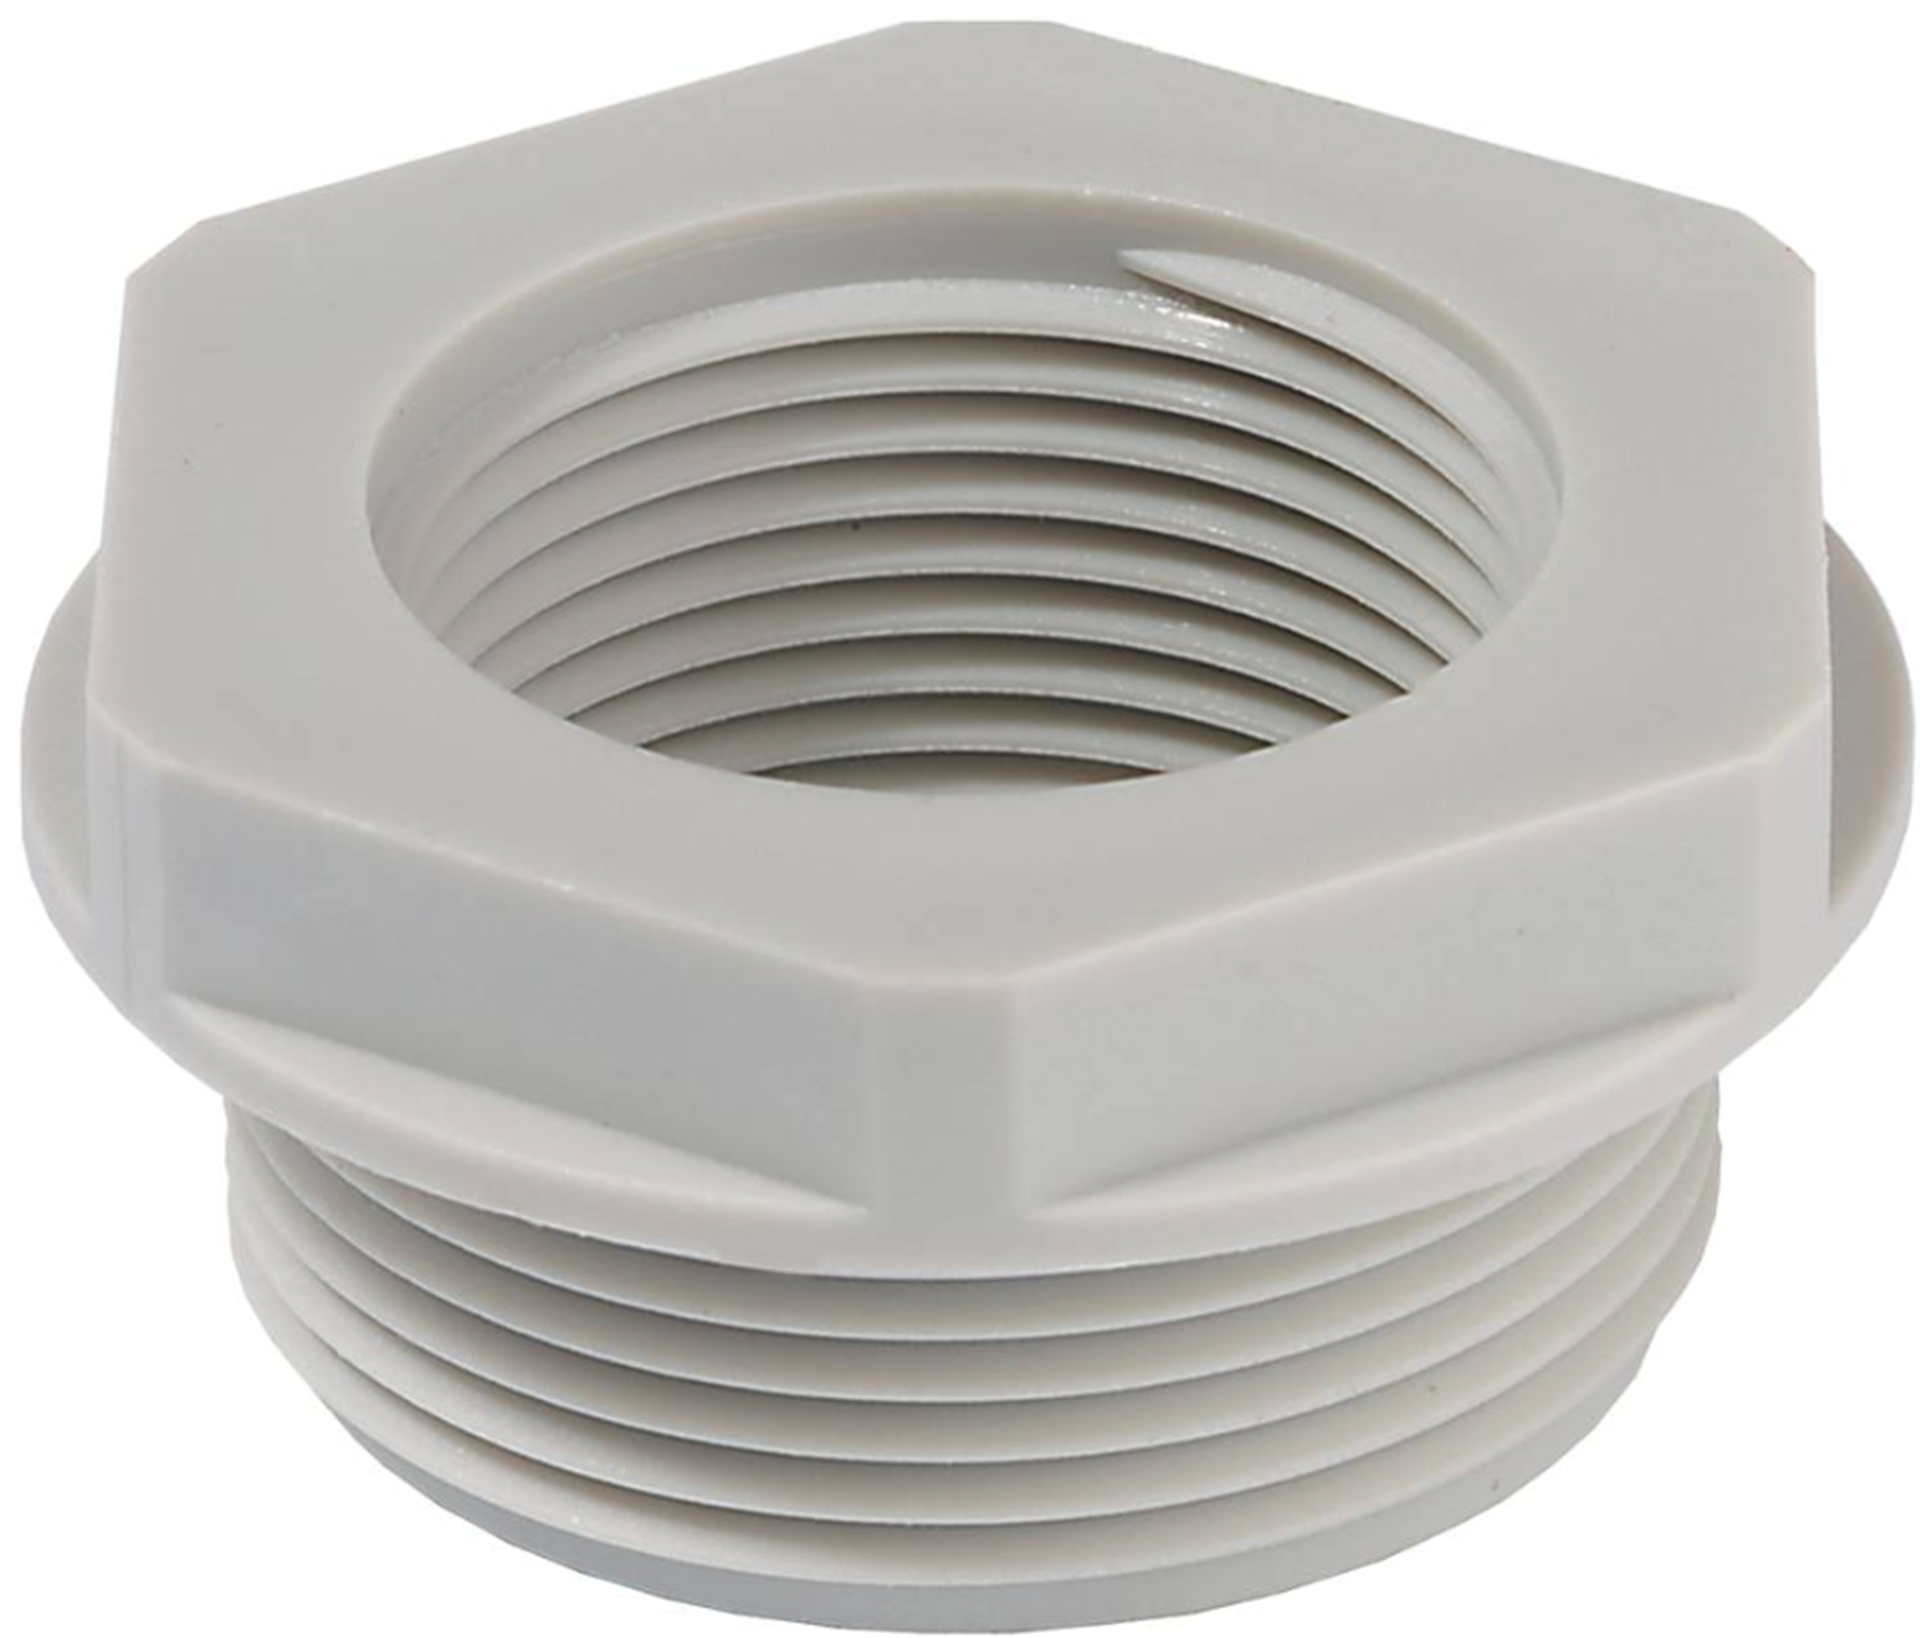 Wiska KRM 63/50 Reduction Adapter LG 10063594